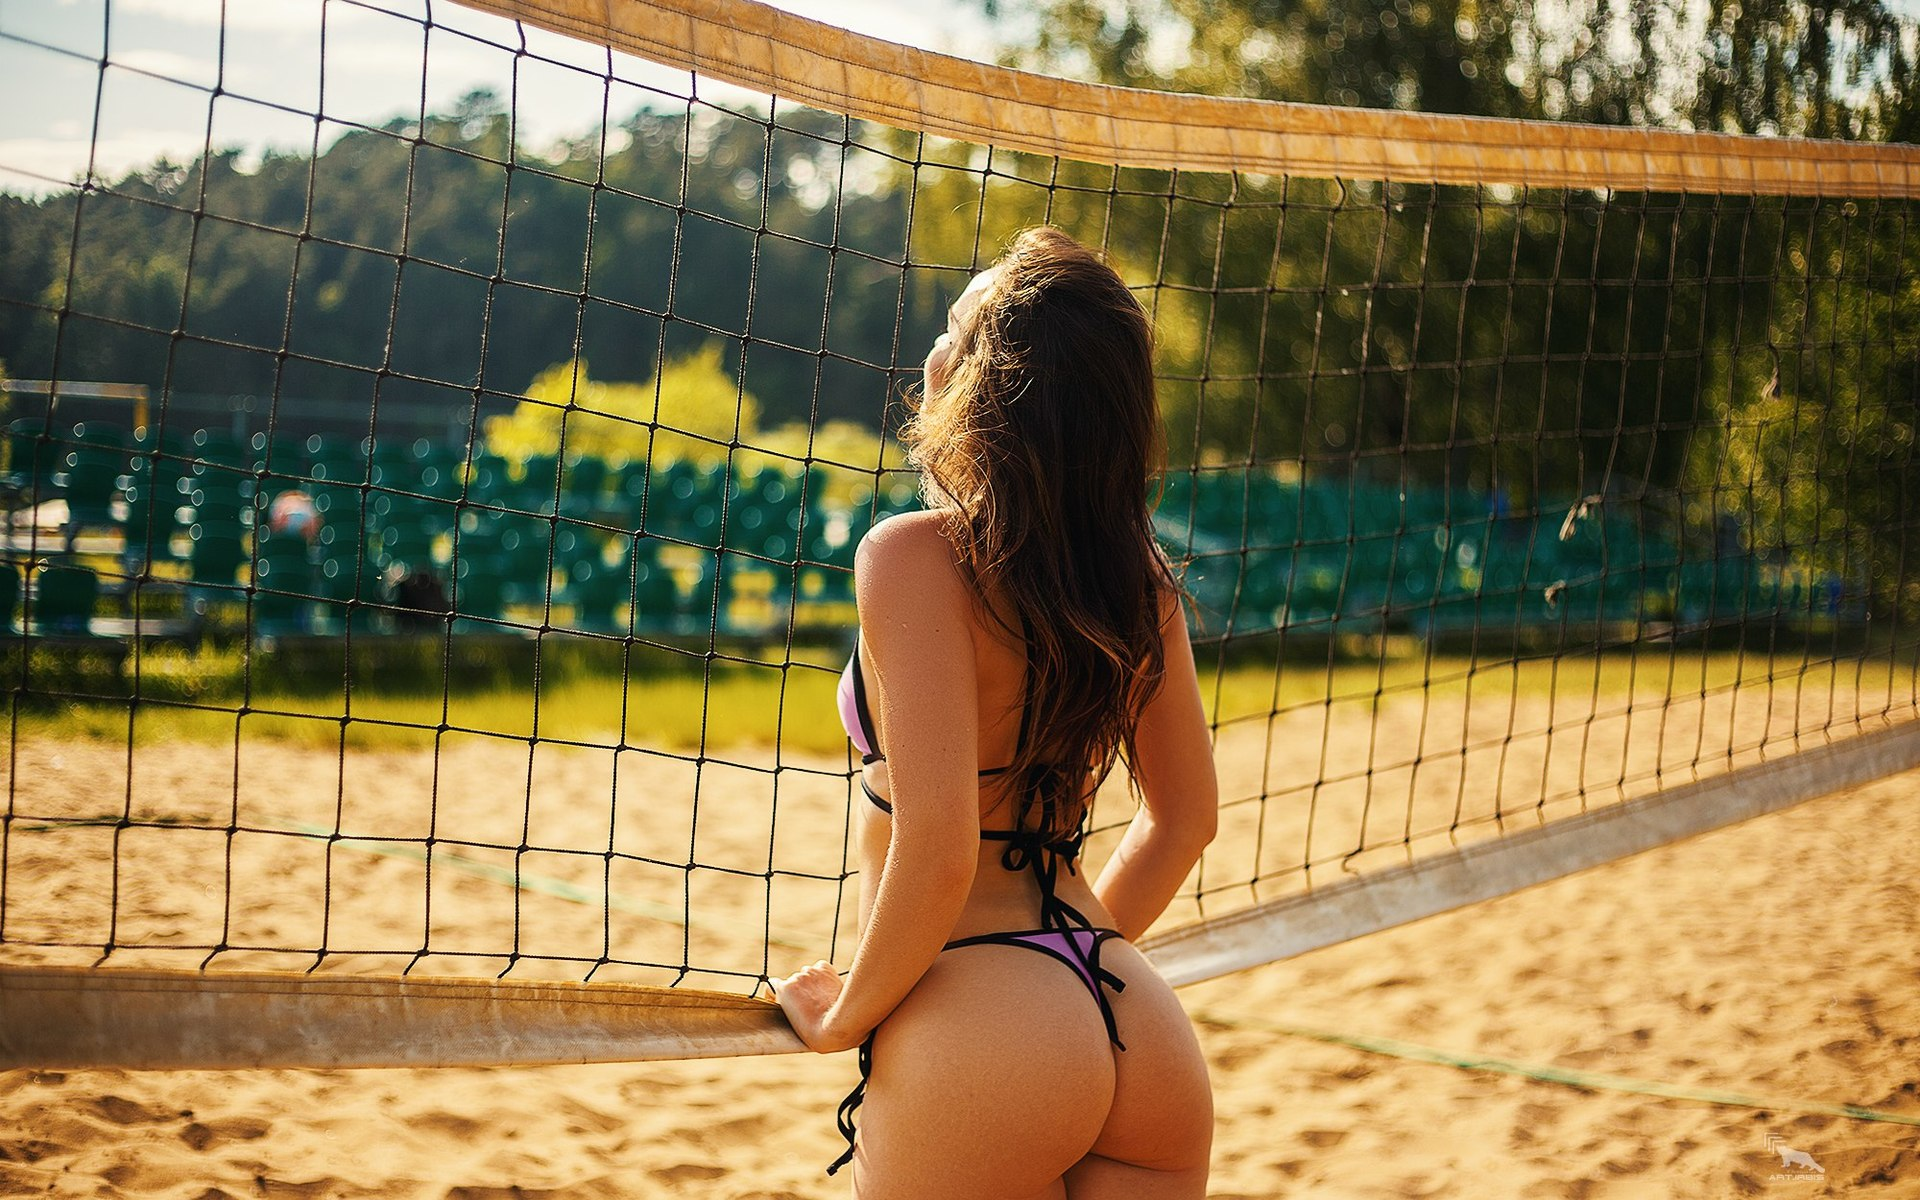 women-brunette-purple-bikini-beach-volleyball-sand-ass